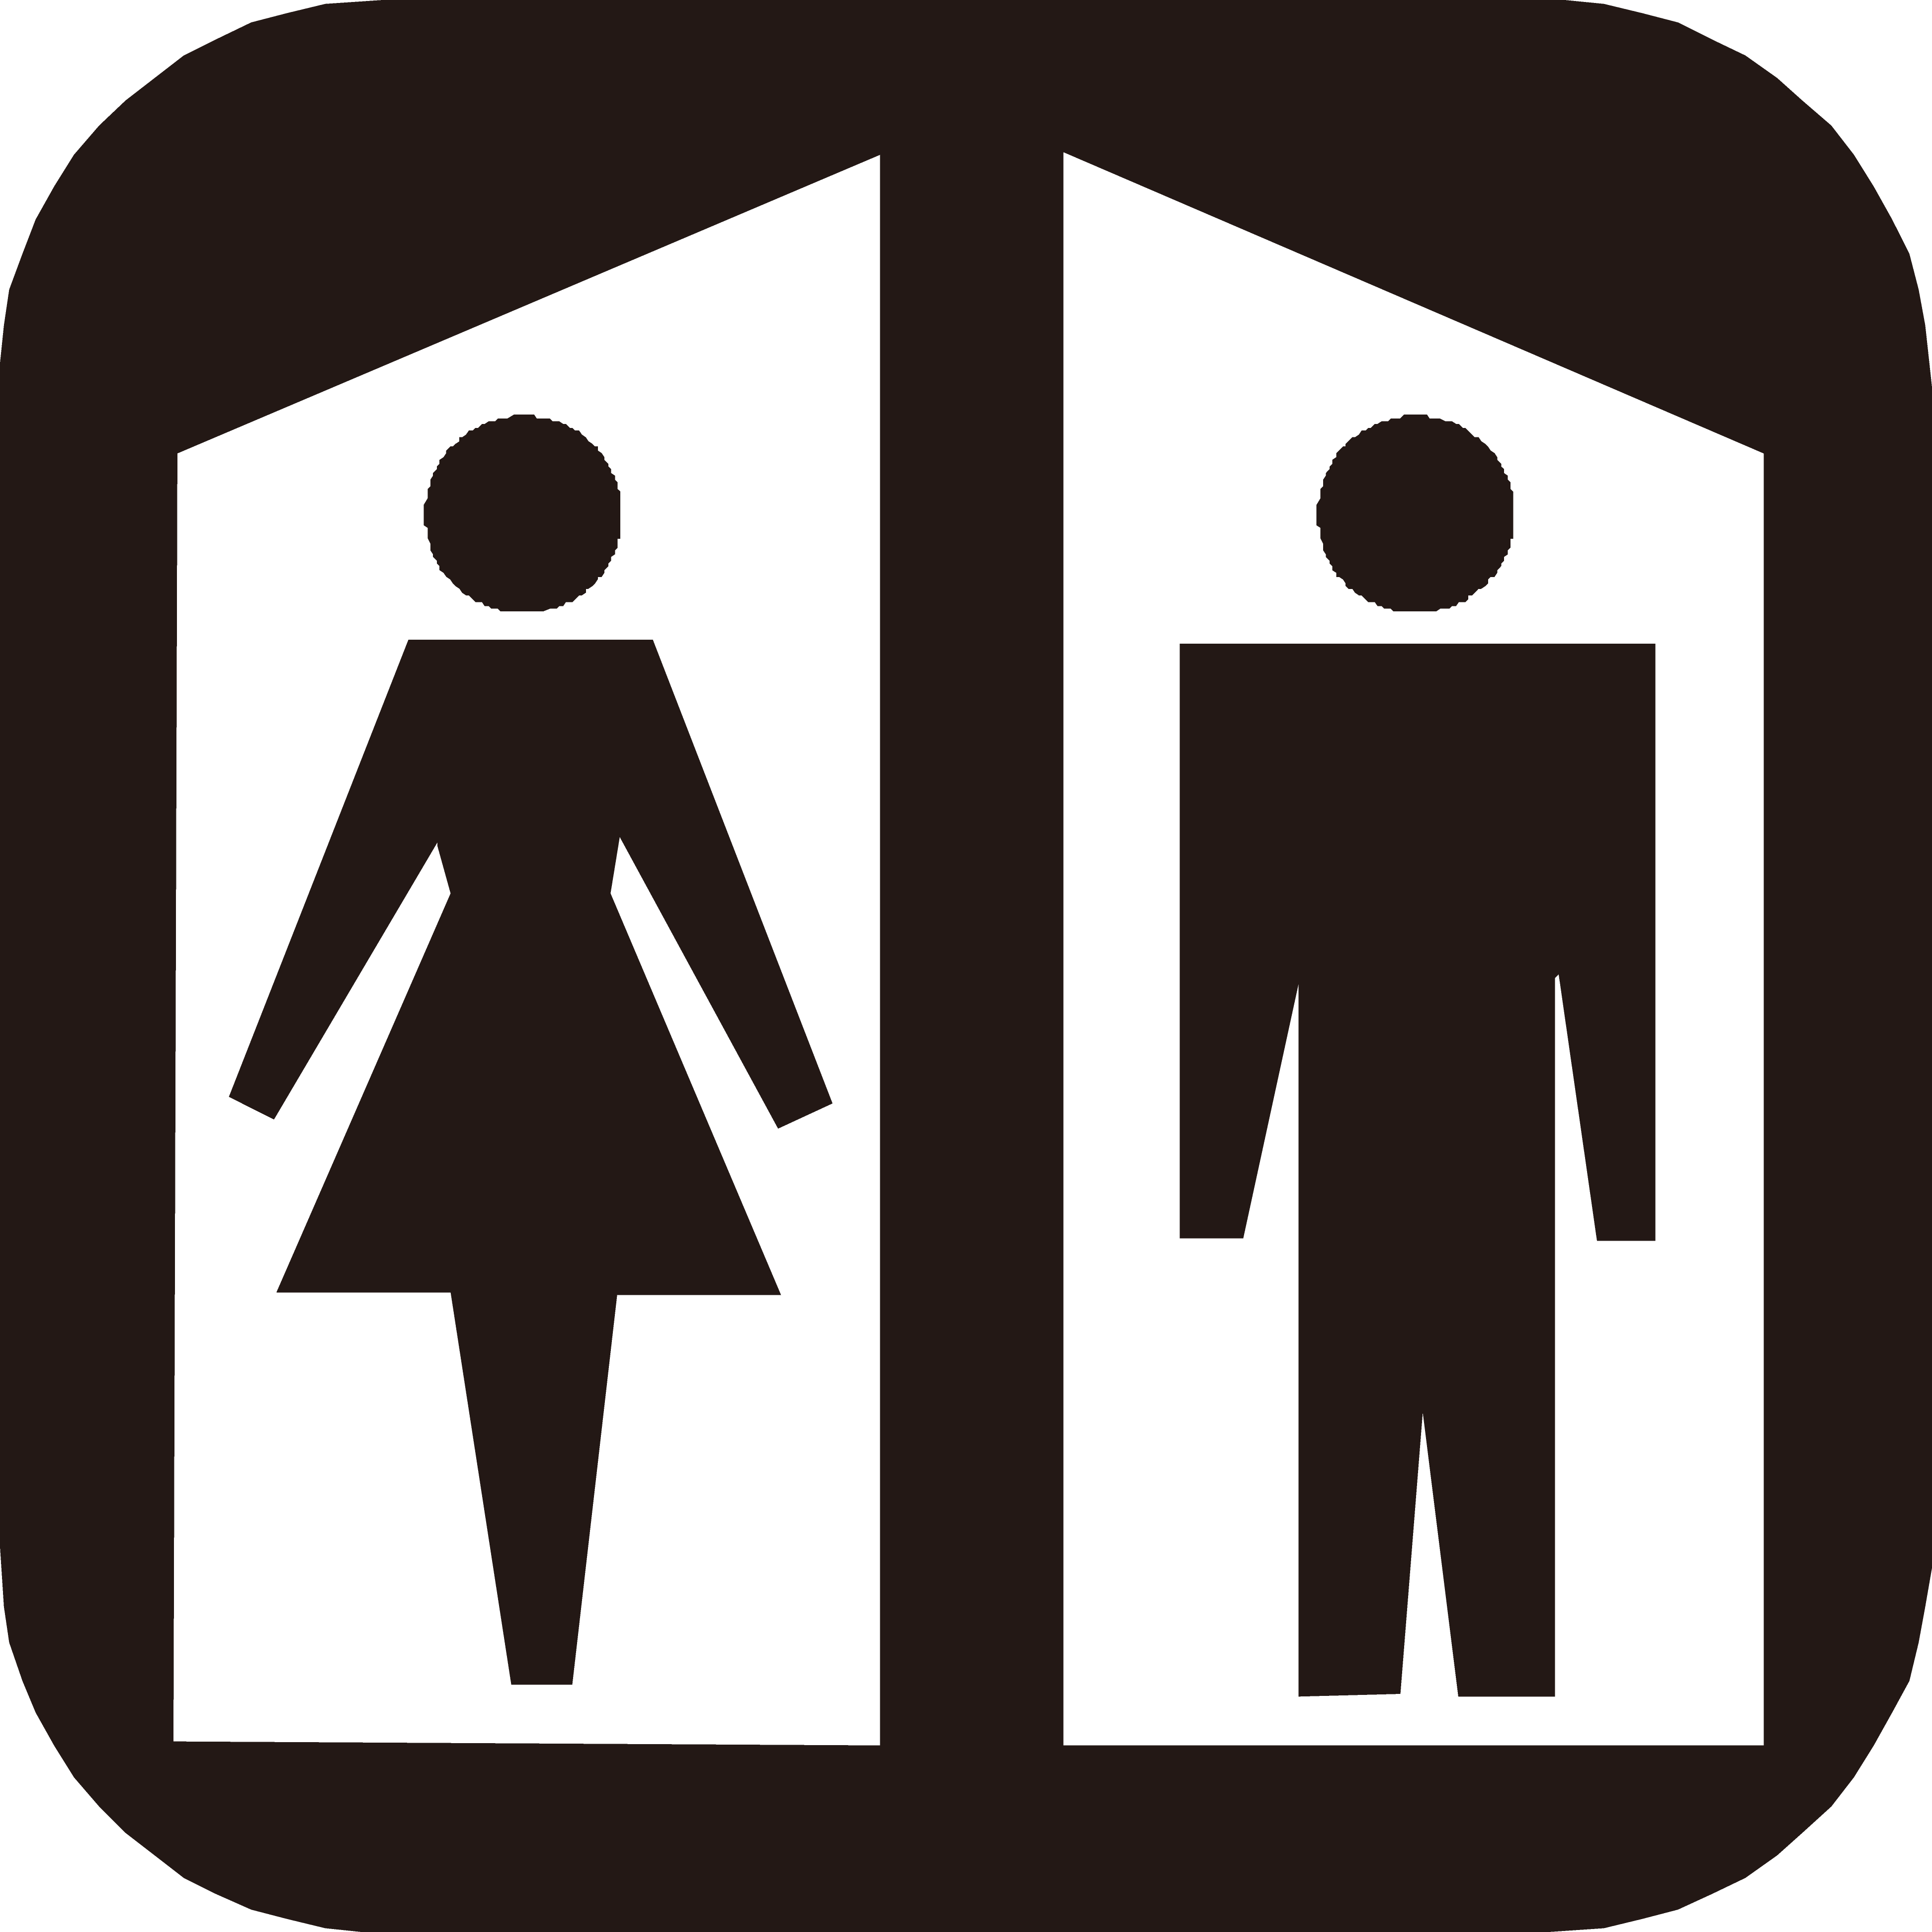 3887x3887 Public Toilet Flush Toilet Sign Bathroom